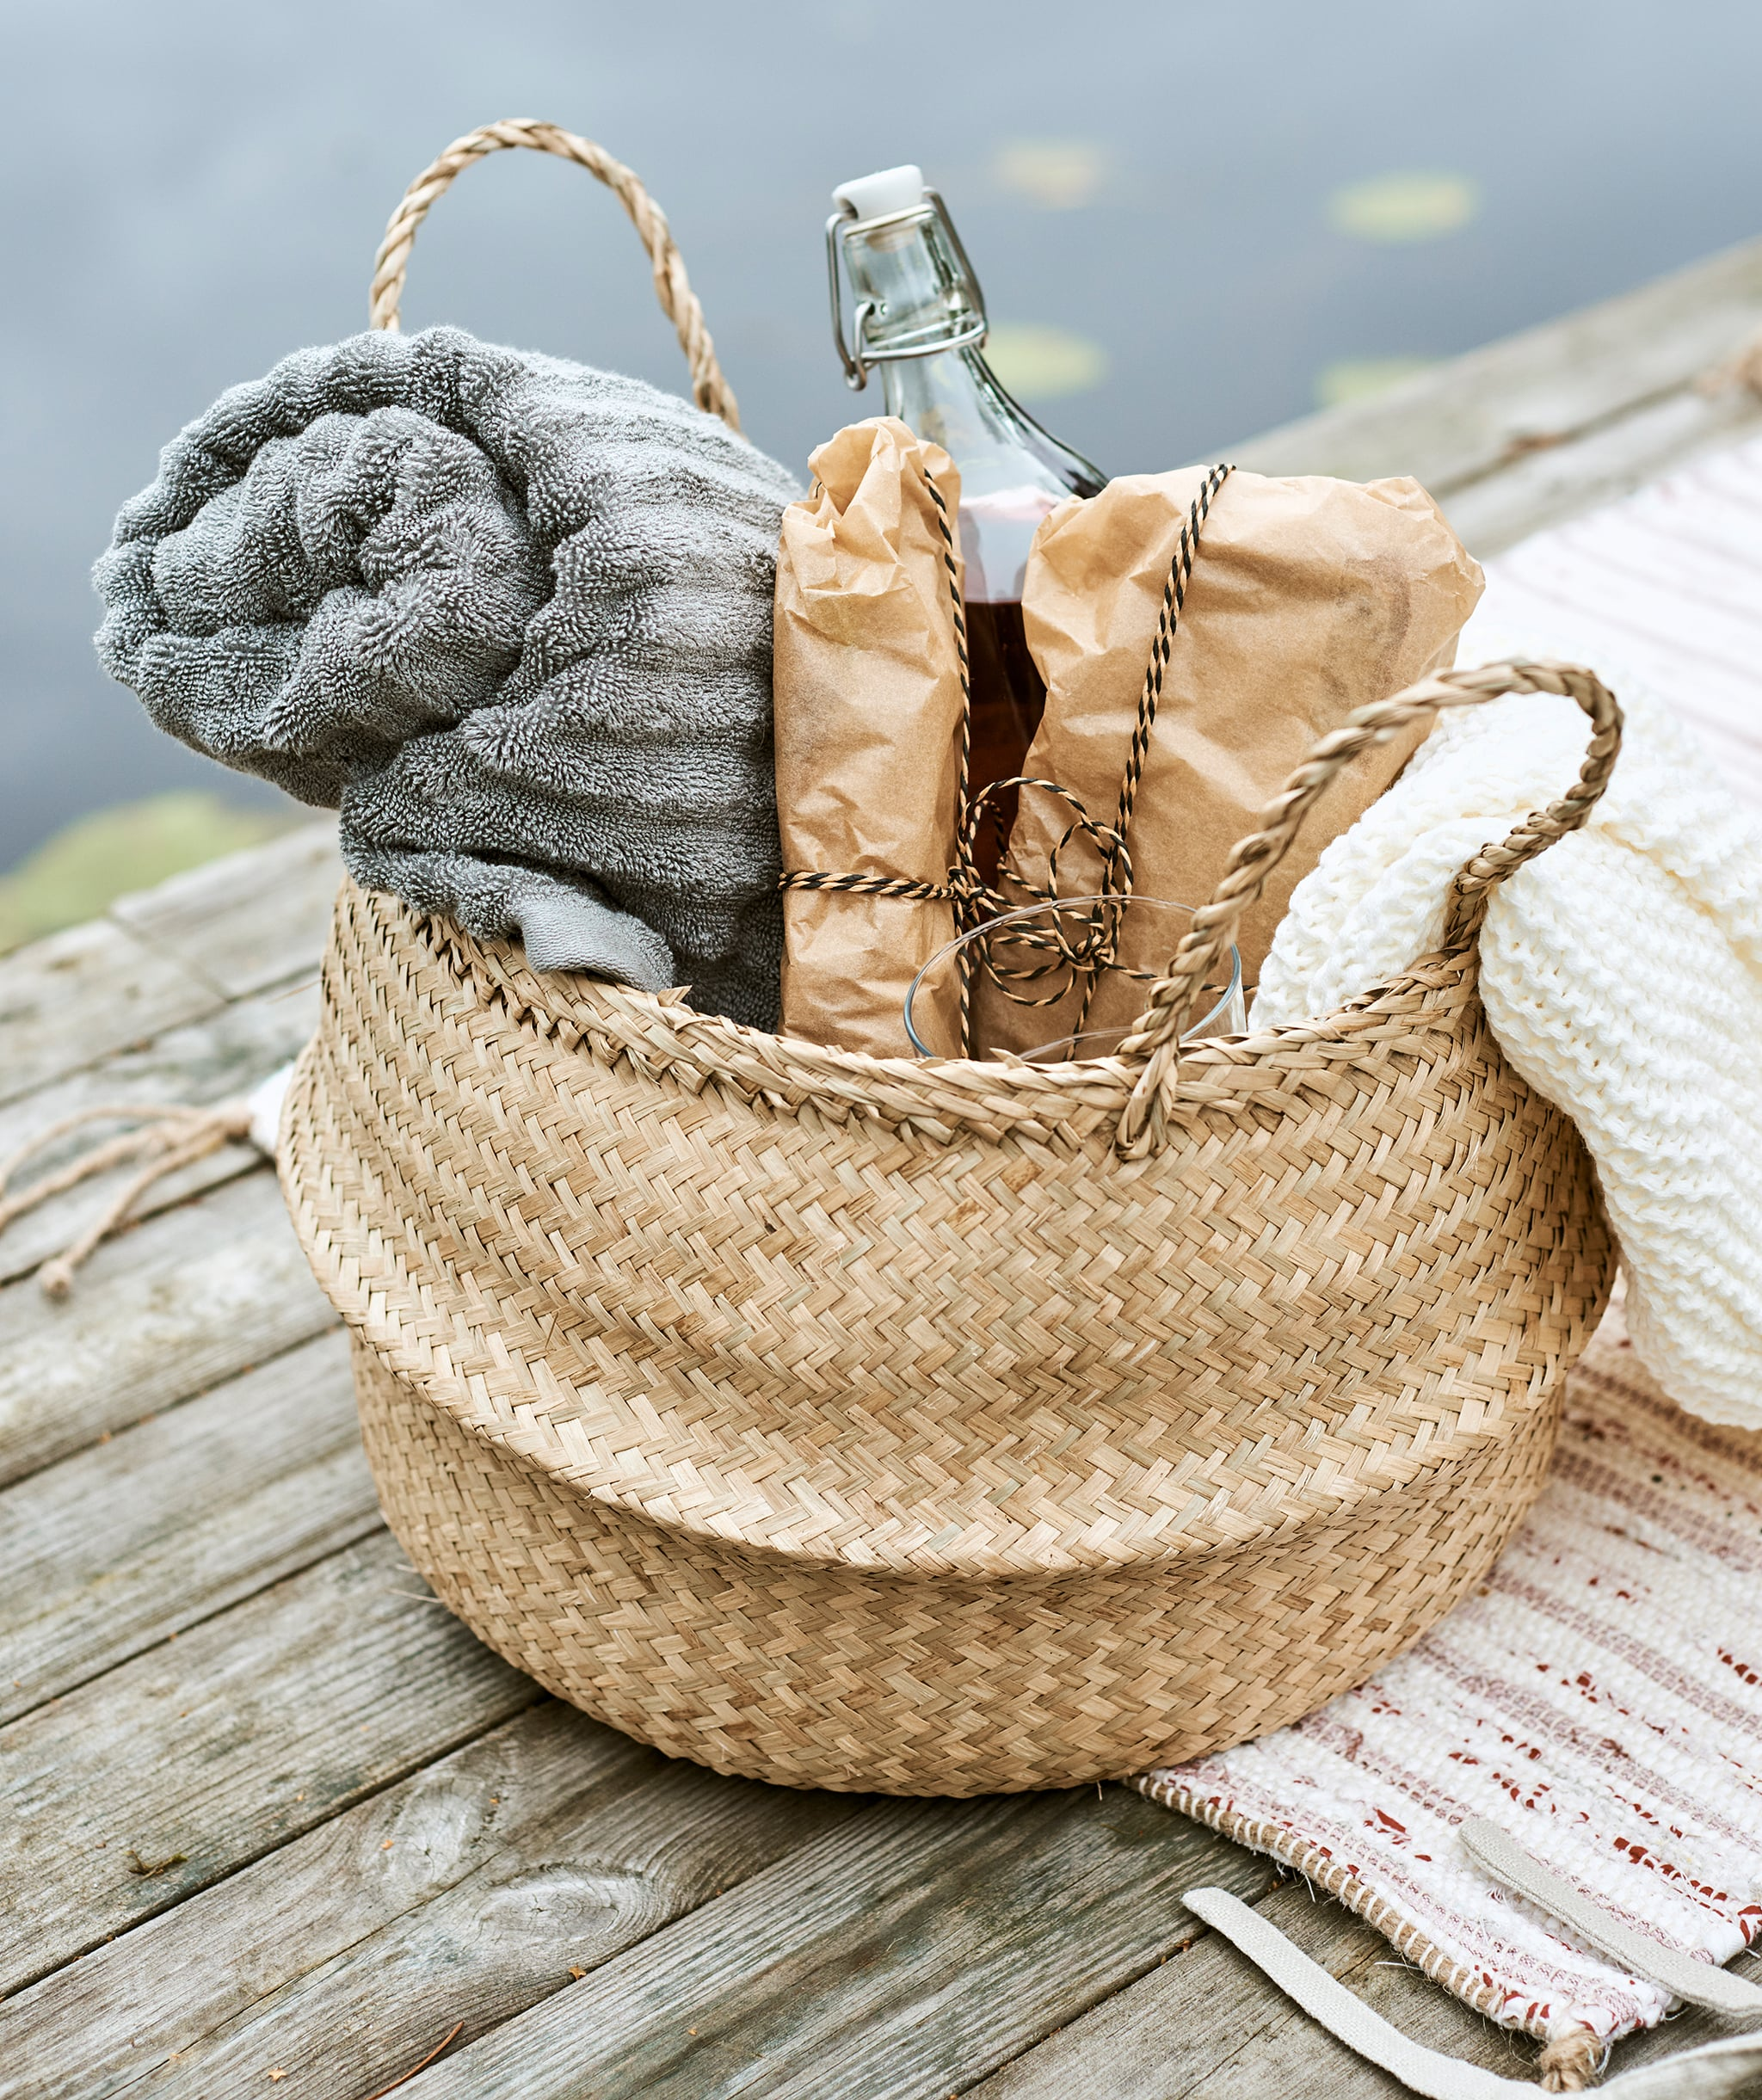 A woven basket packed for a picnic with rolled-up grey towel, sandwiches wrapped in paper, a cream throw and bottle of drink.